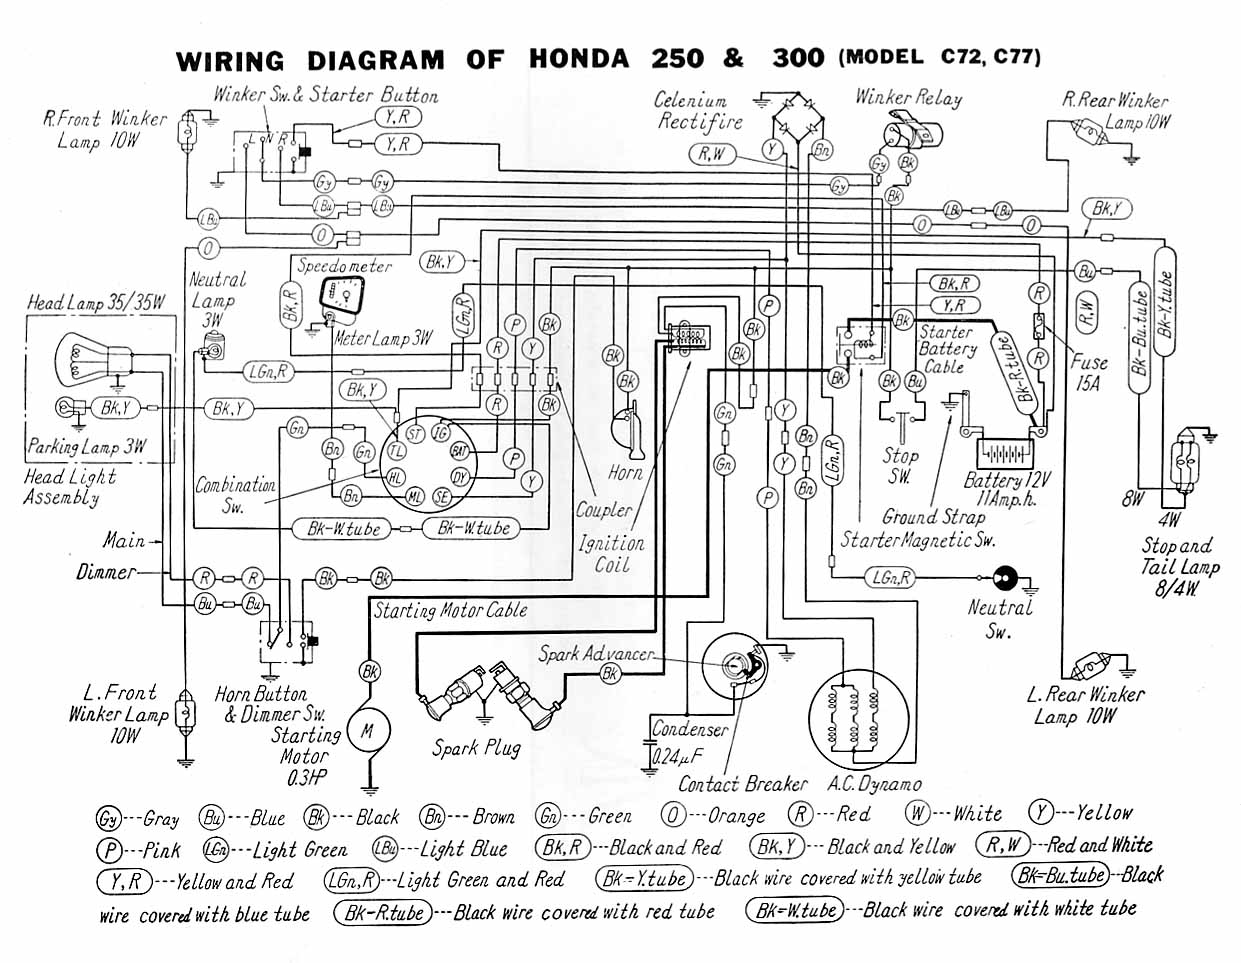 Wiring Diagrams Honda 500 4 Diagram C77